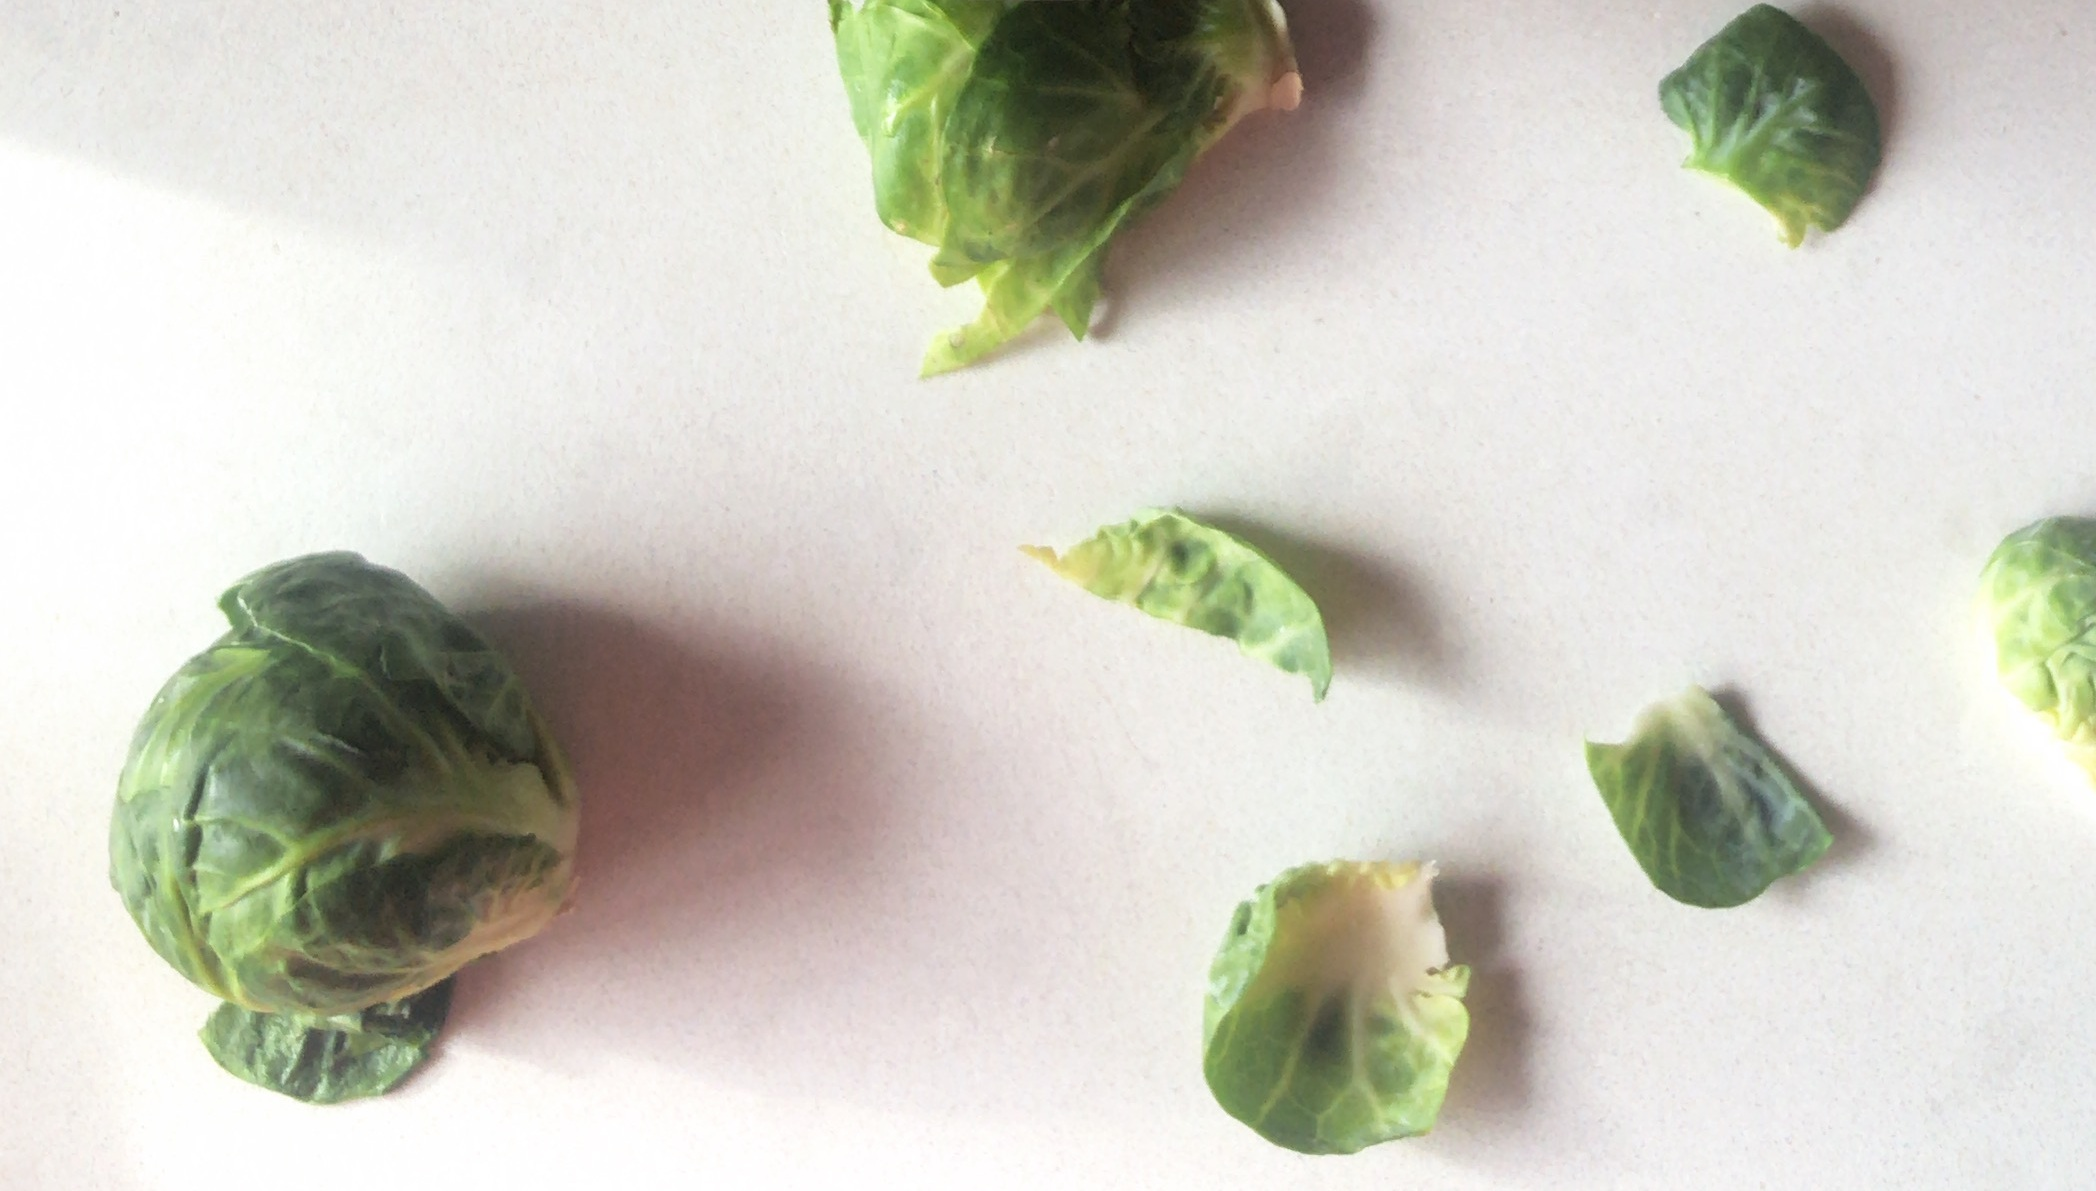 2. Brussels sprouts - Brussels sprouts remind me of mini cabbages, so adorable and delicious. They are high in fiber, vitamin K, vitamin C, antioxidants and omega 3 fatty acids. They also help to lower blood sugar, and may help to fight against inflammation and some cancers.